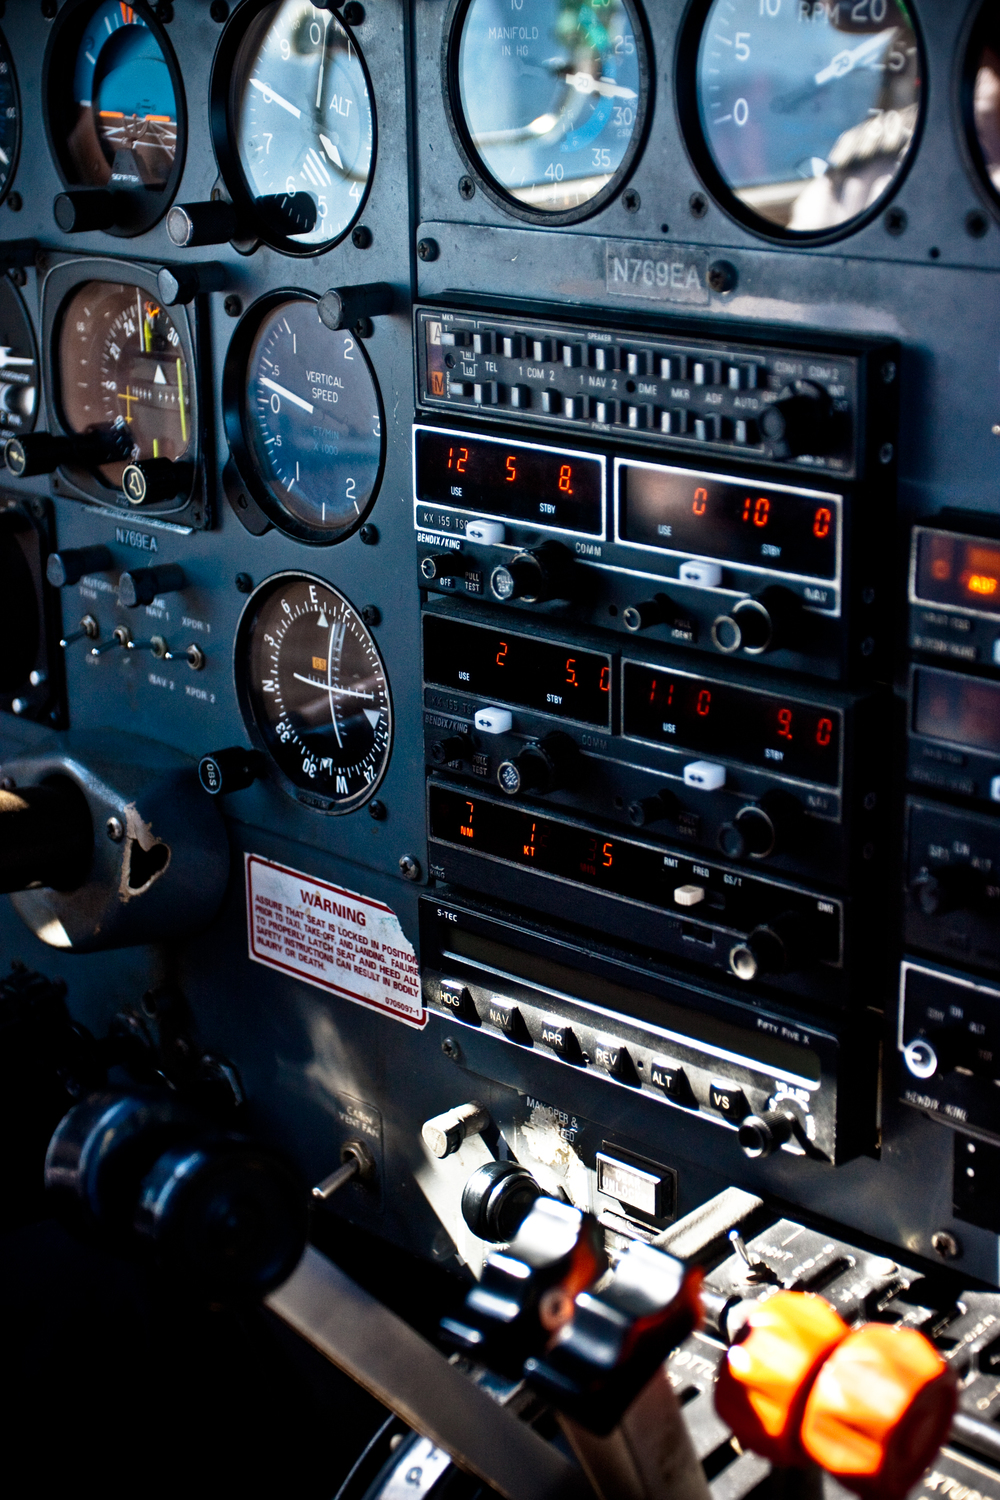 Detail shot of flight controls shot from the cockpit of a small plane.